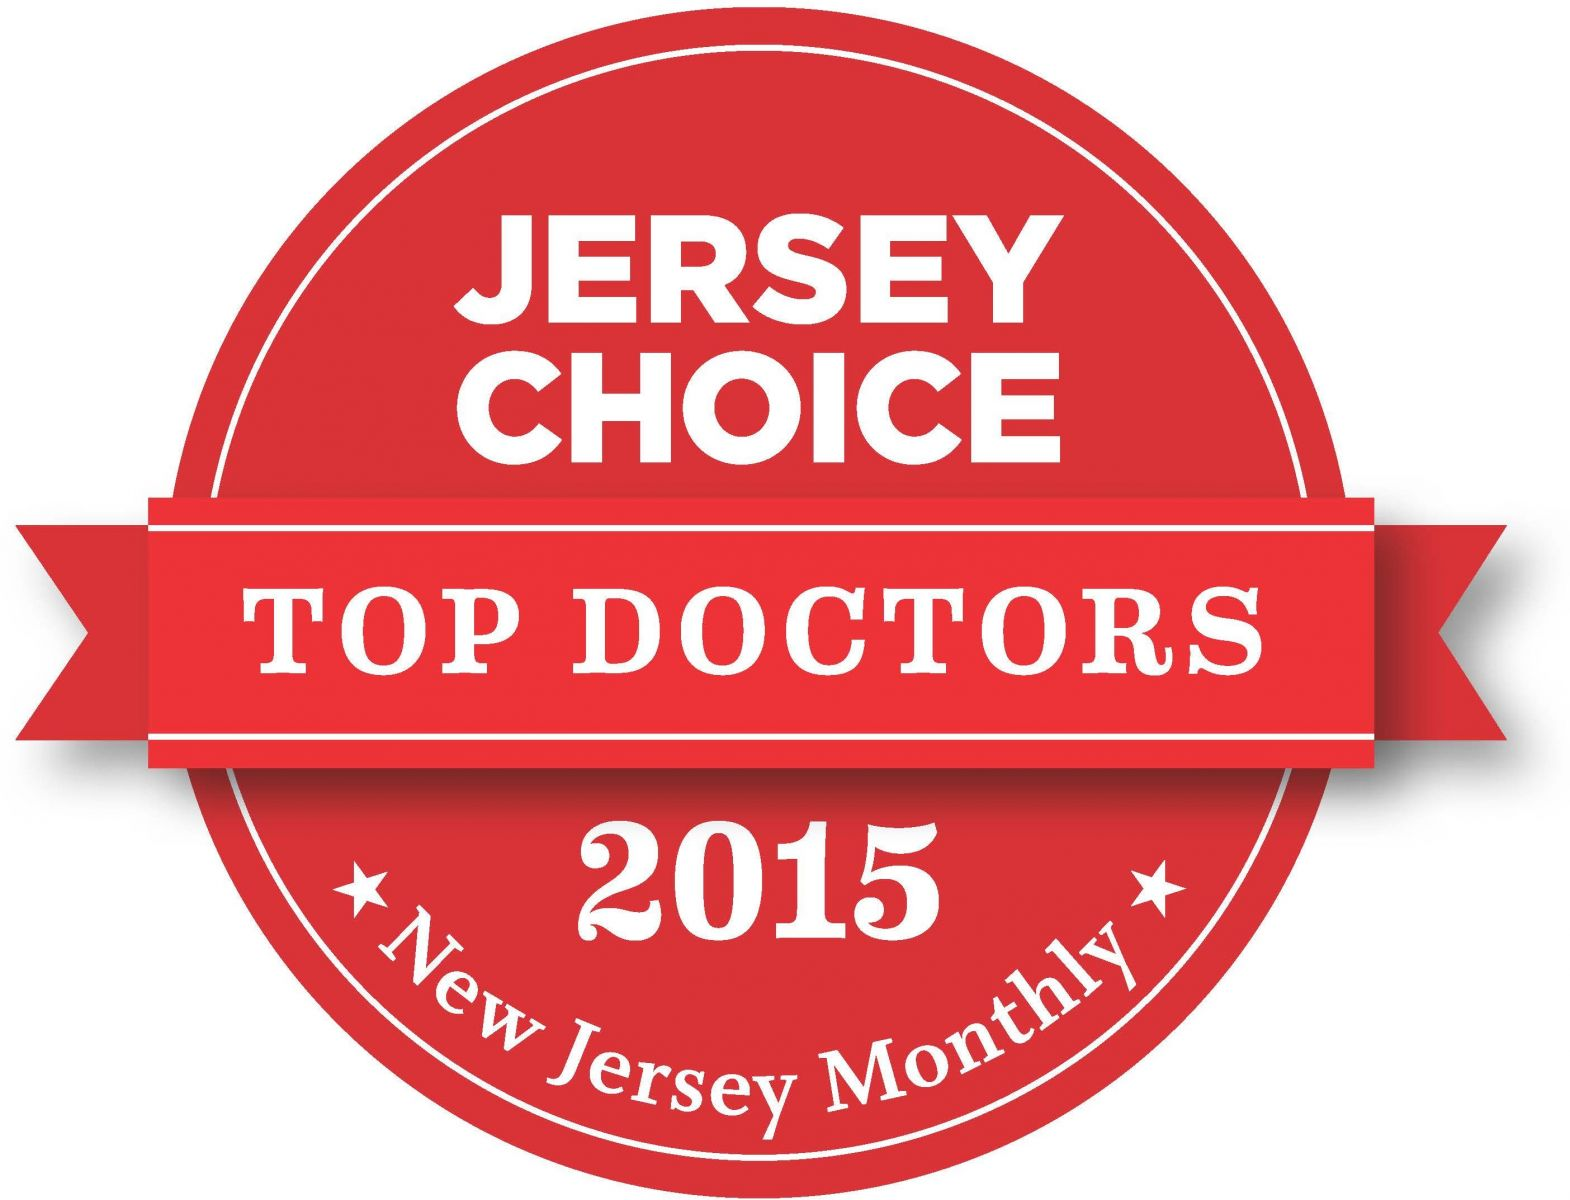 Jersey Choice Top Doctors - 2015